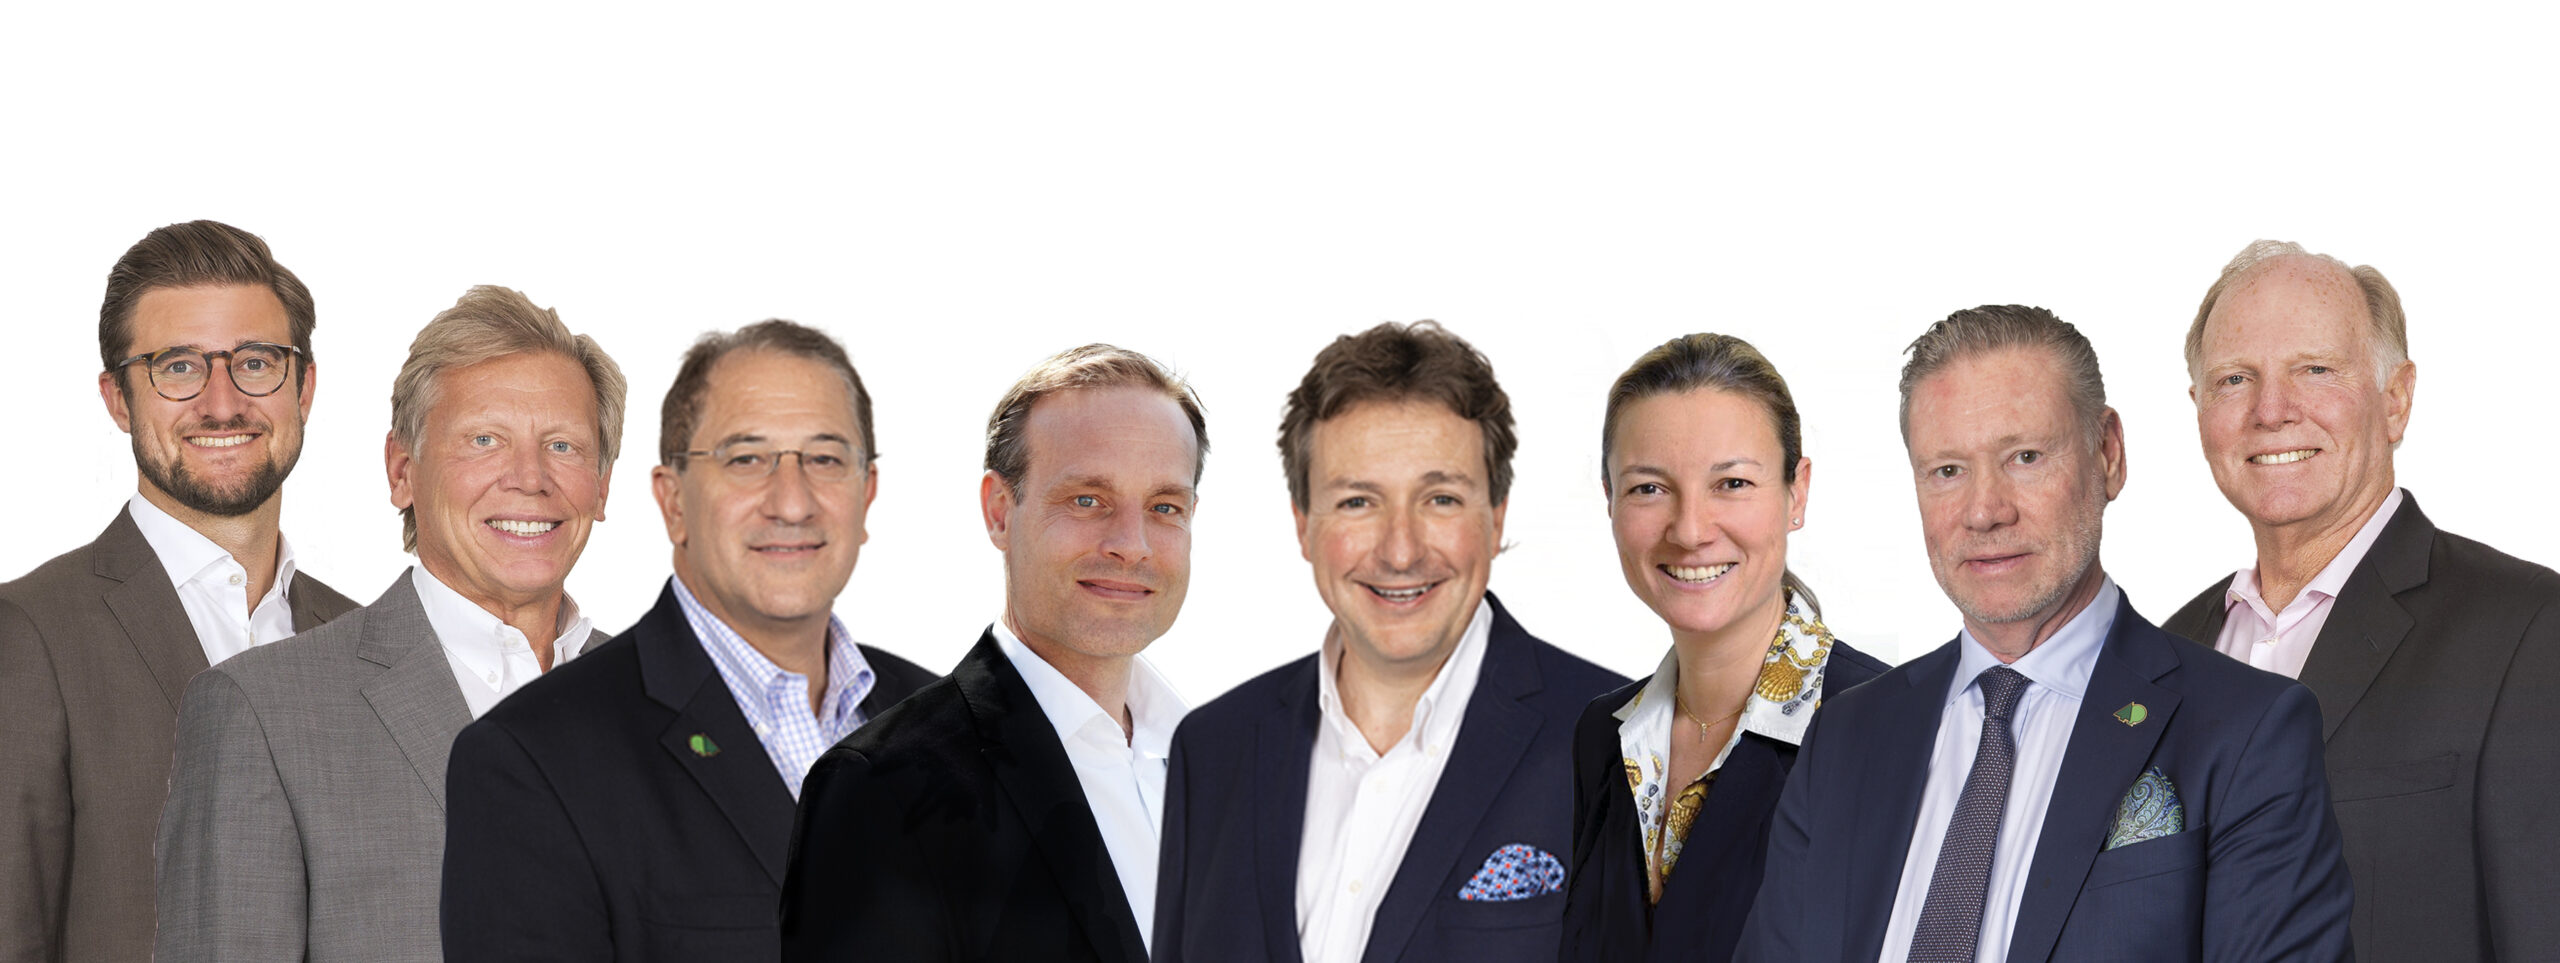 group image of cellmark board of directors